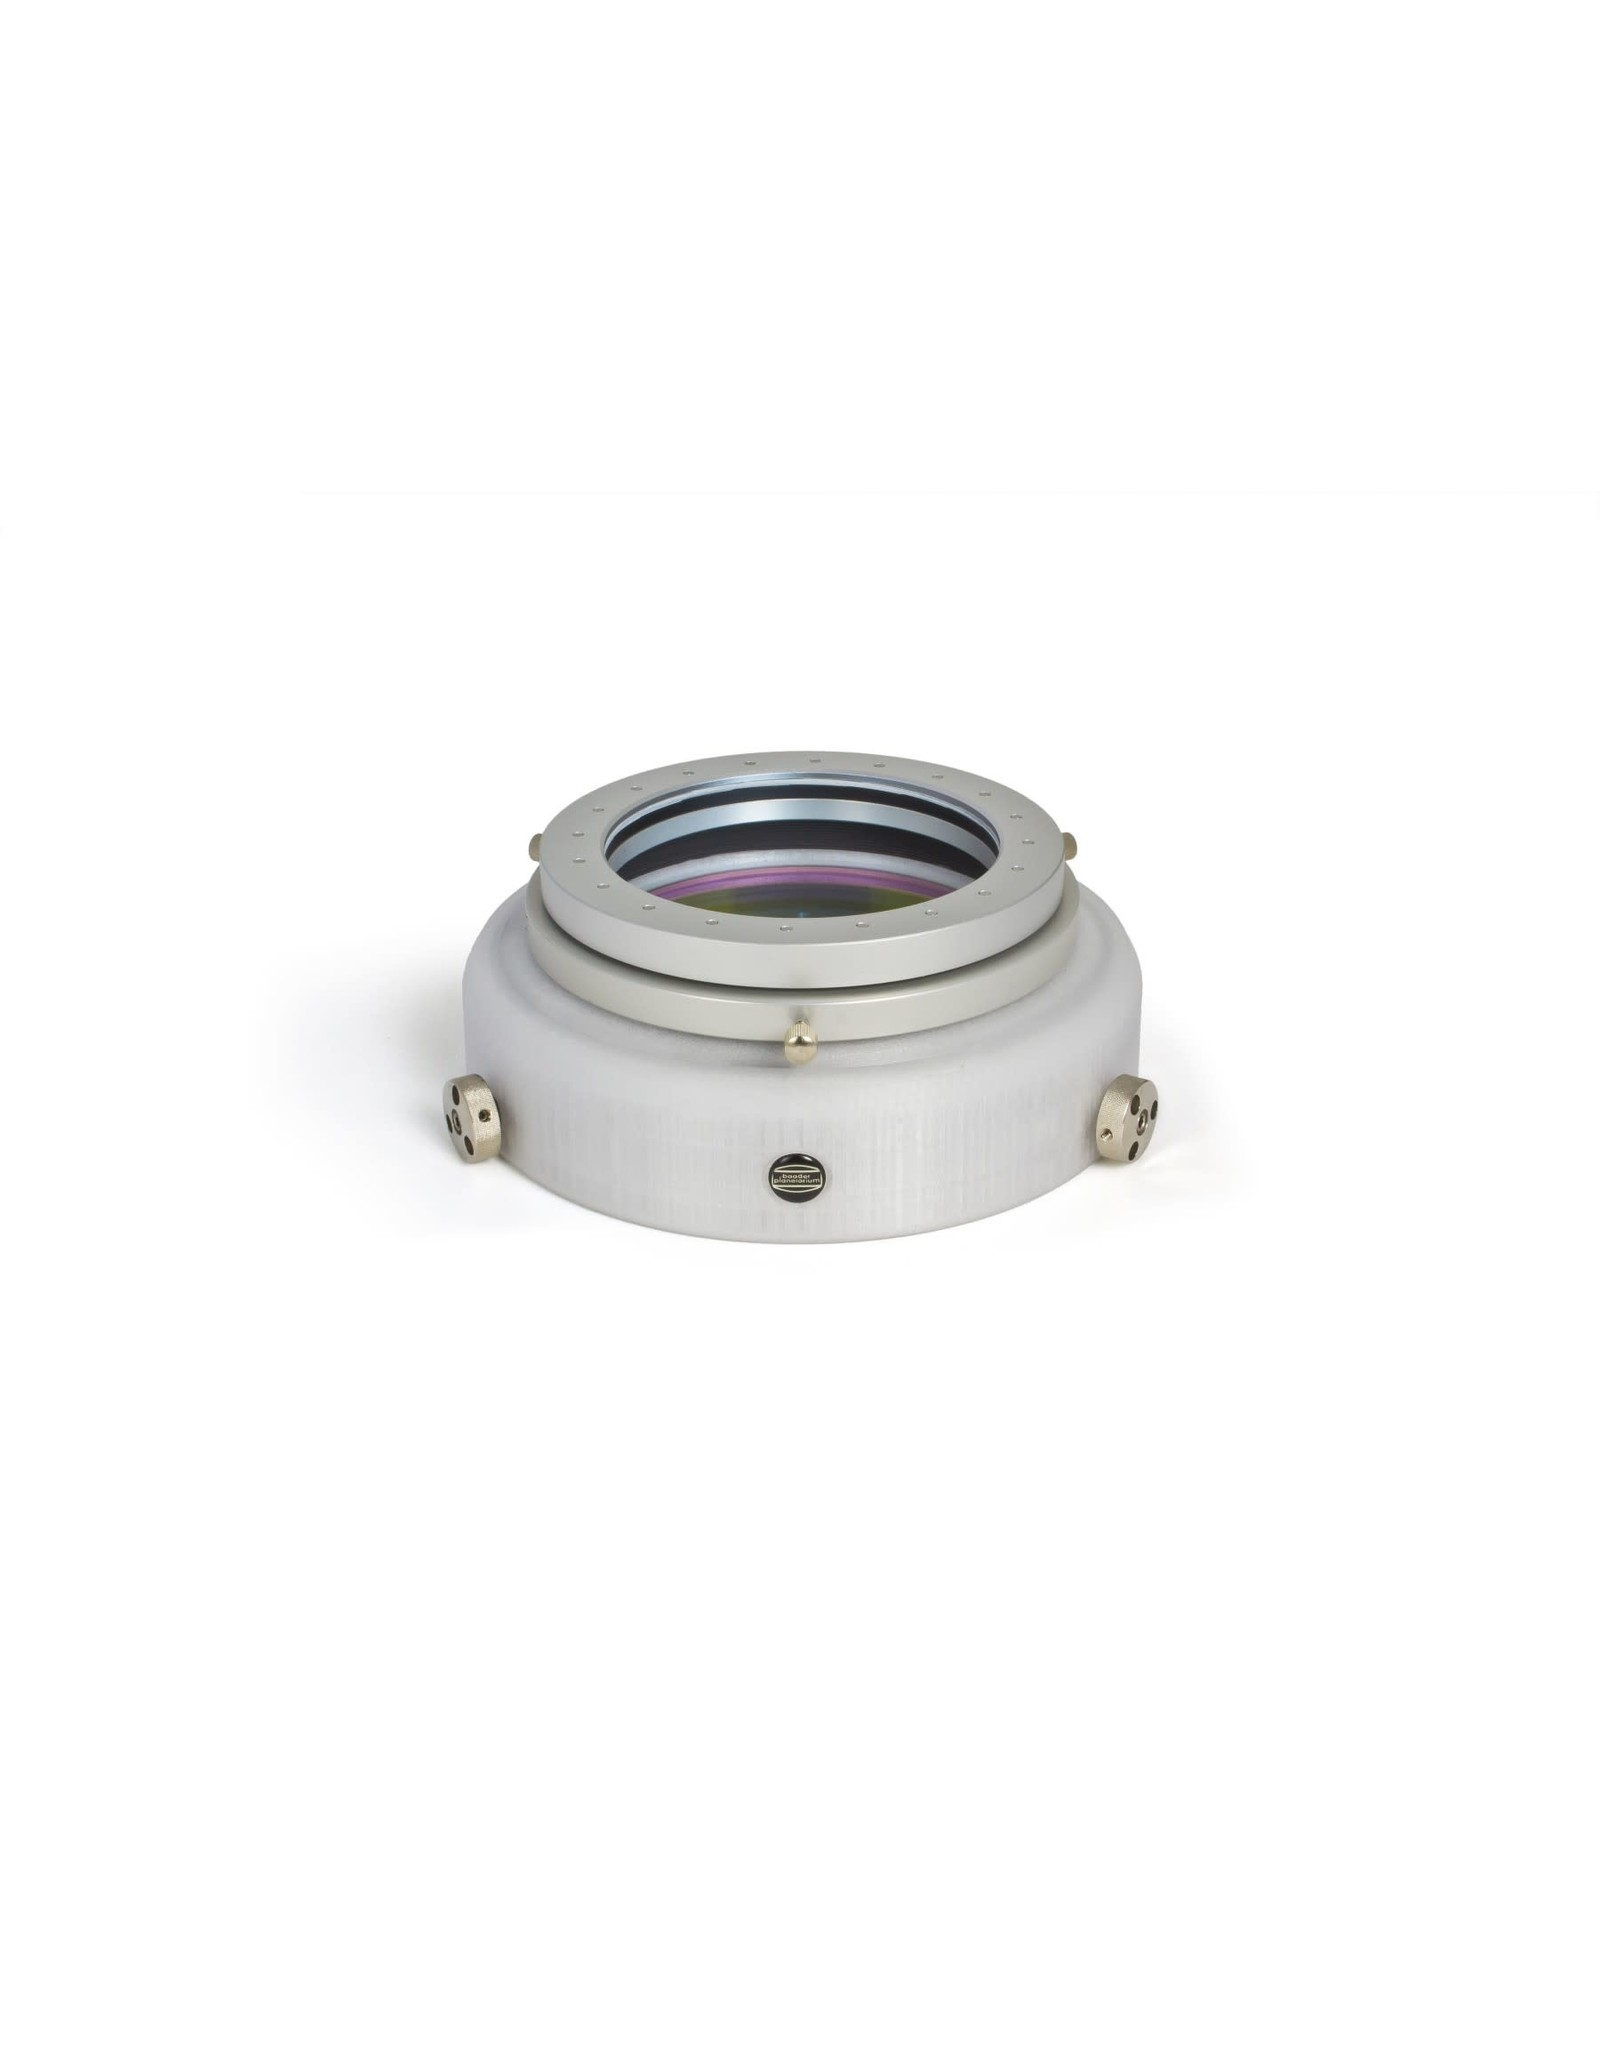 Baader Planetarium Baader D-ERF Energy Rejection Filter (Specify Size)